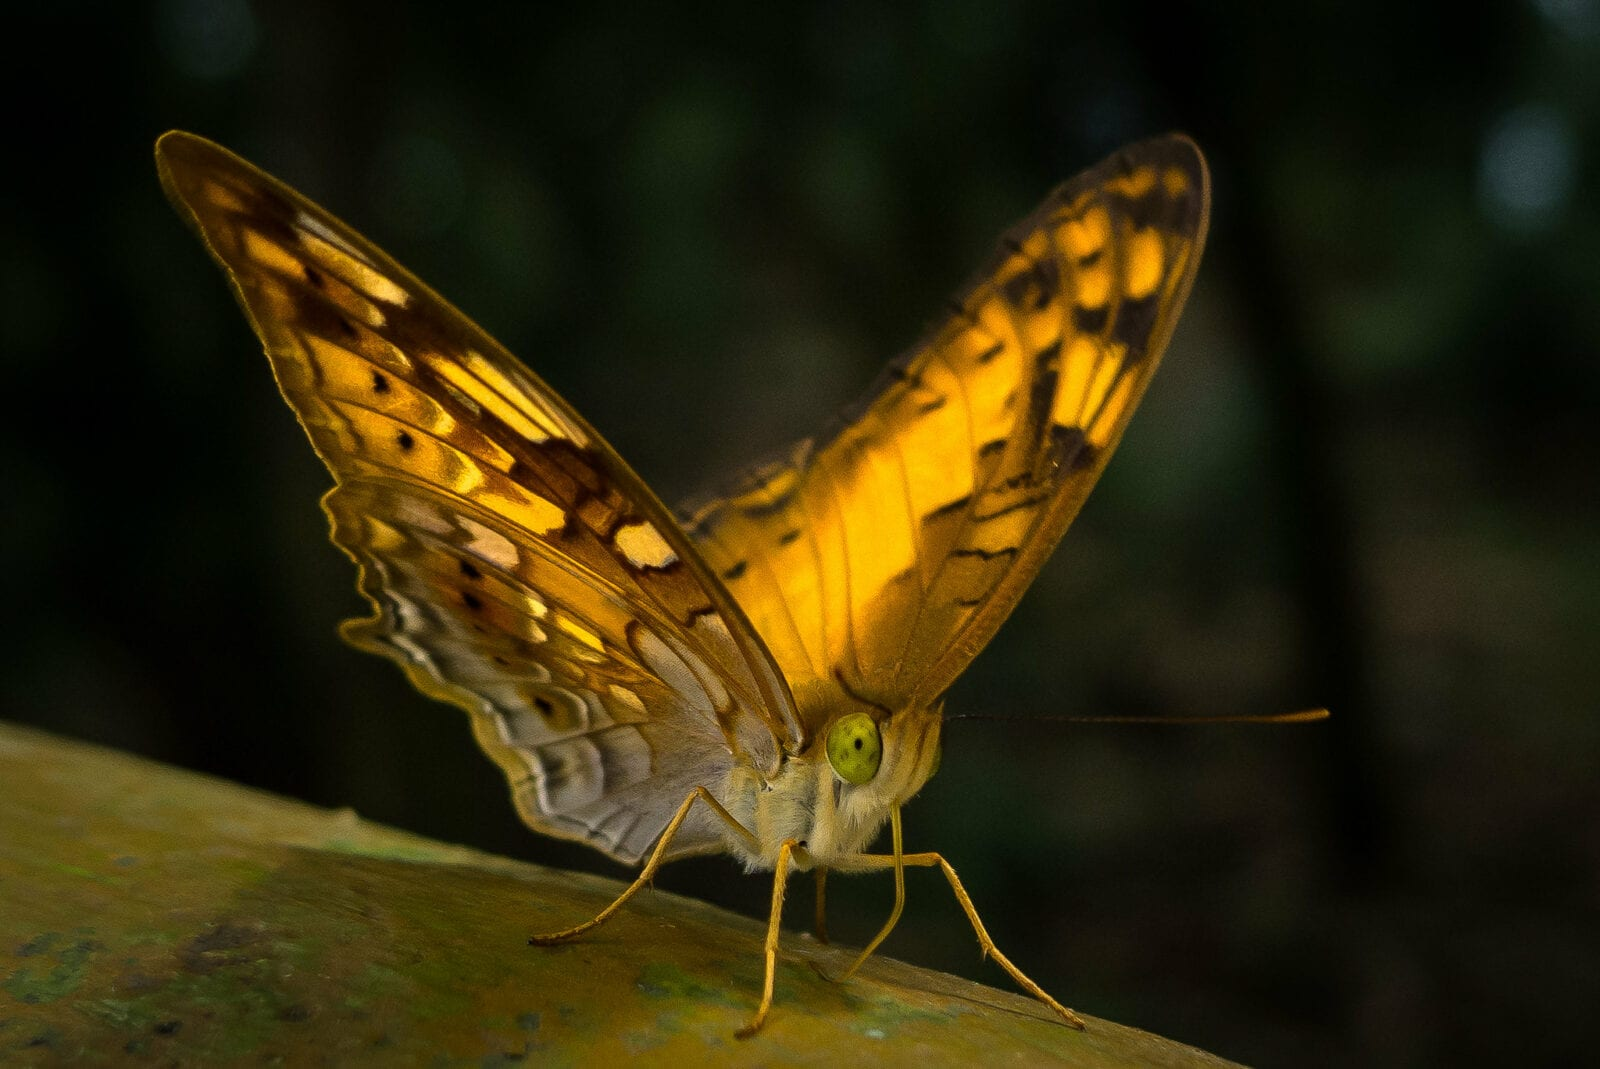 Image of a butterfly at Ba Vi National Park in Vietnam